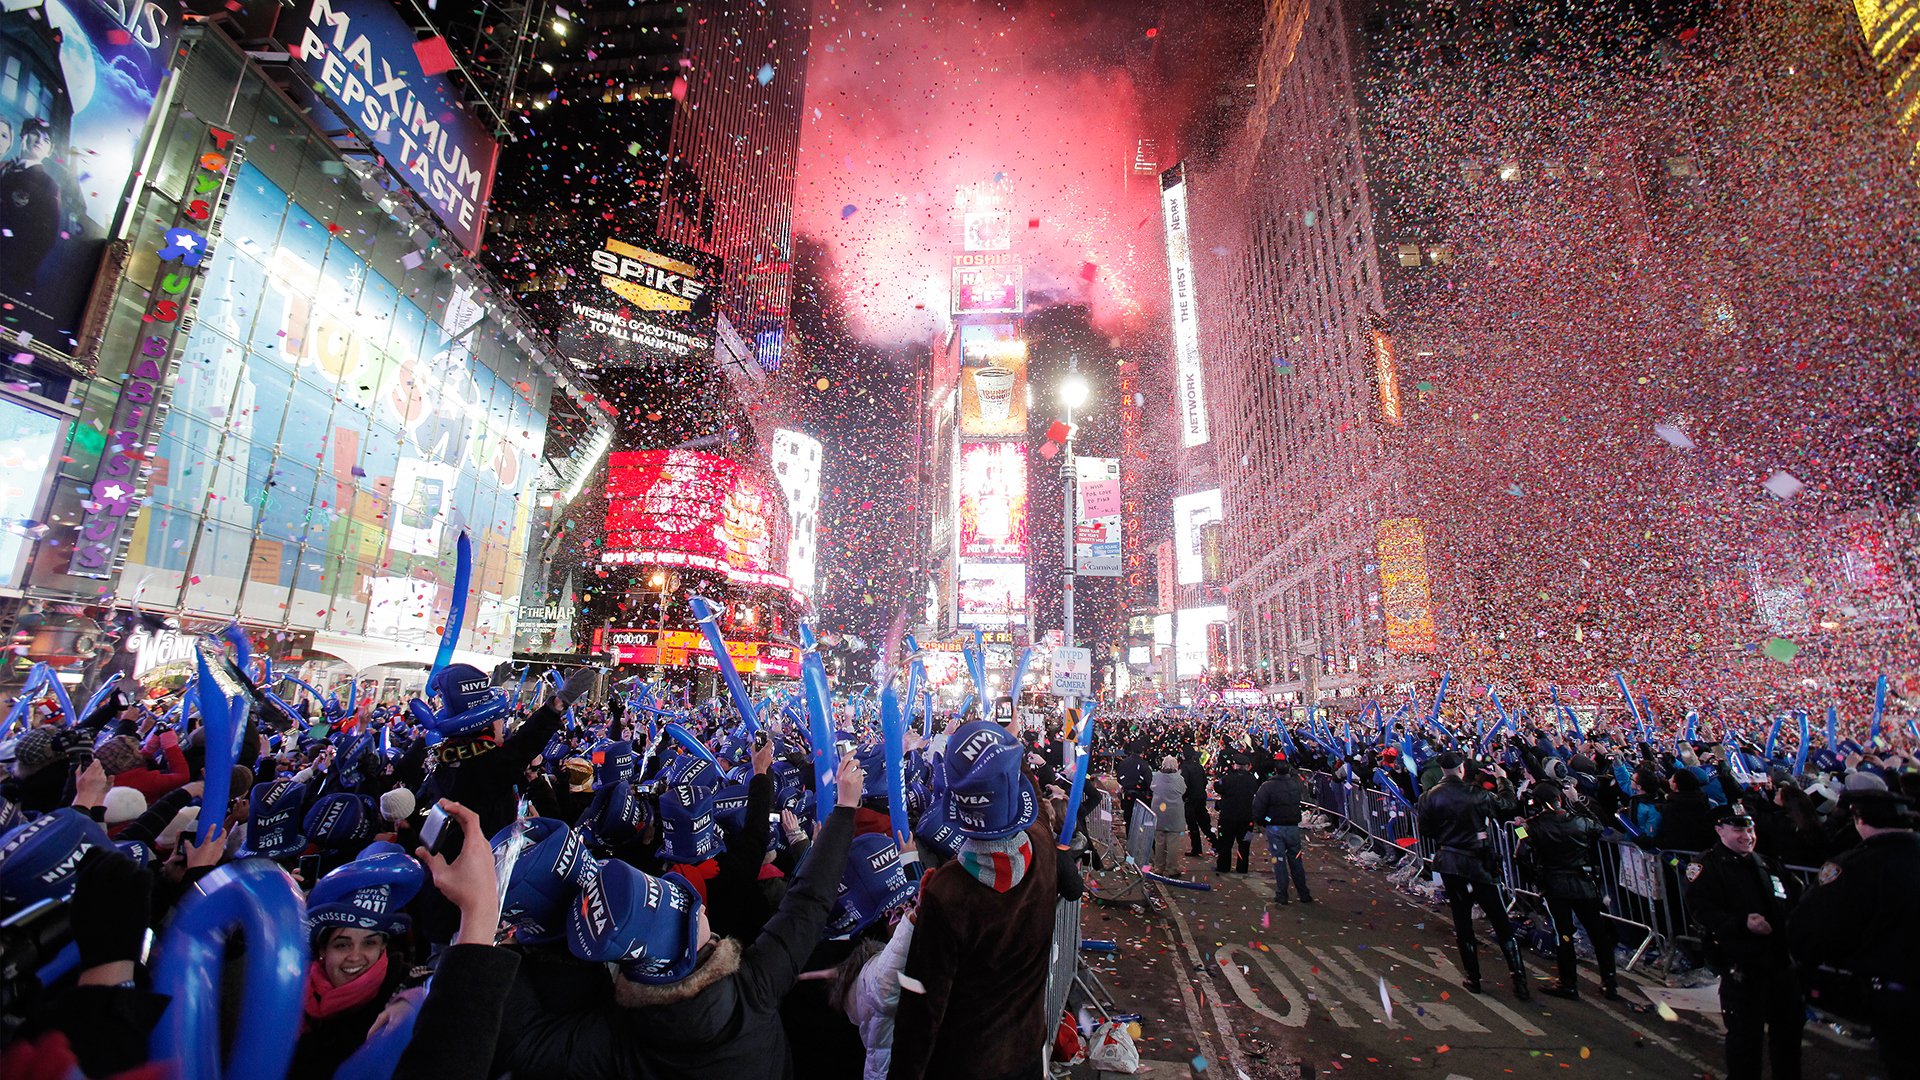 2d10976631-today-131230-times-square-new-years.jpg